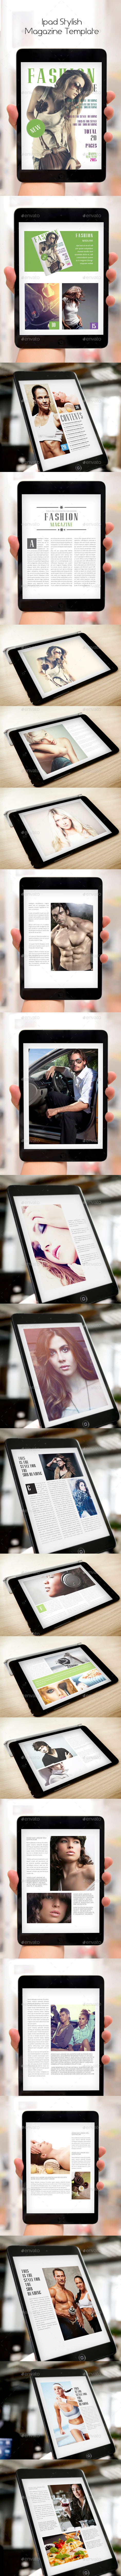 GraphicRiver Ipad Stylish Magazine Template 10241908